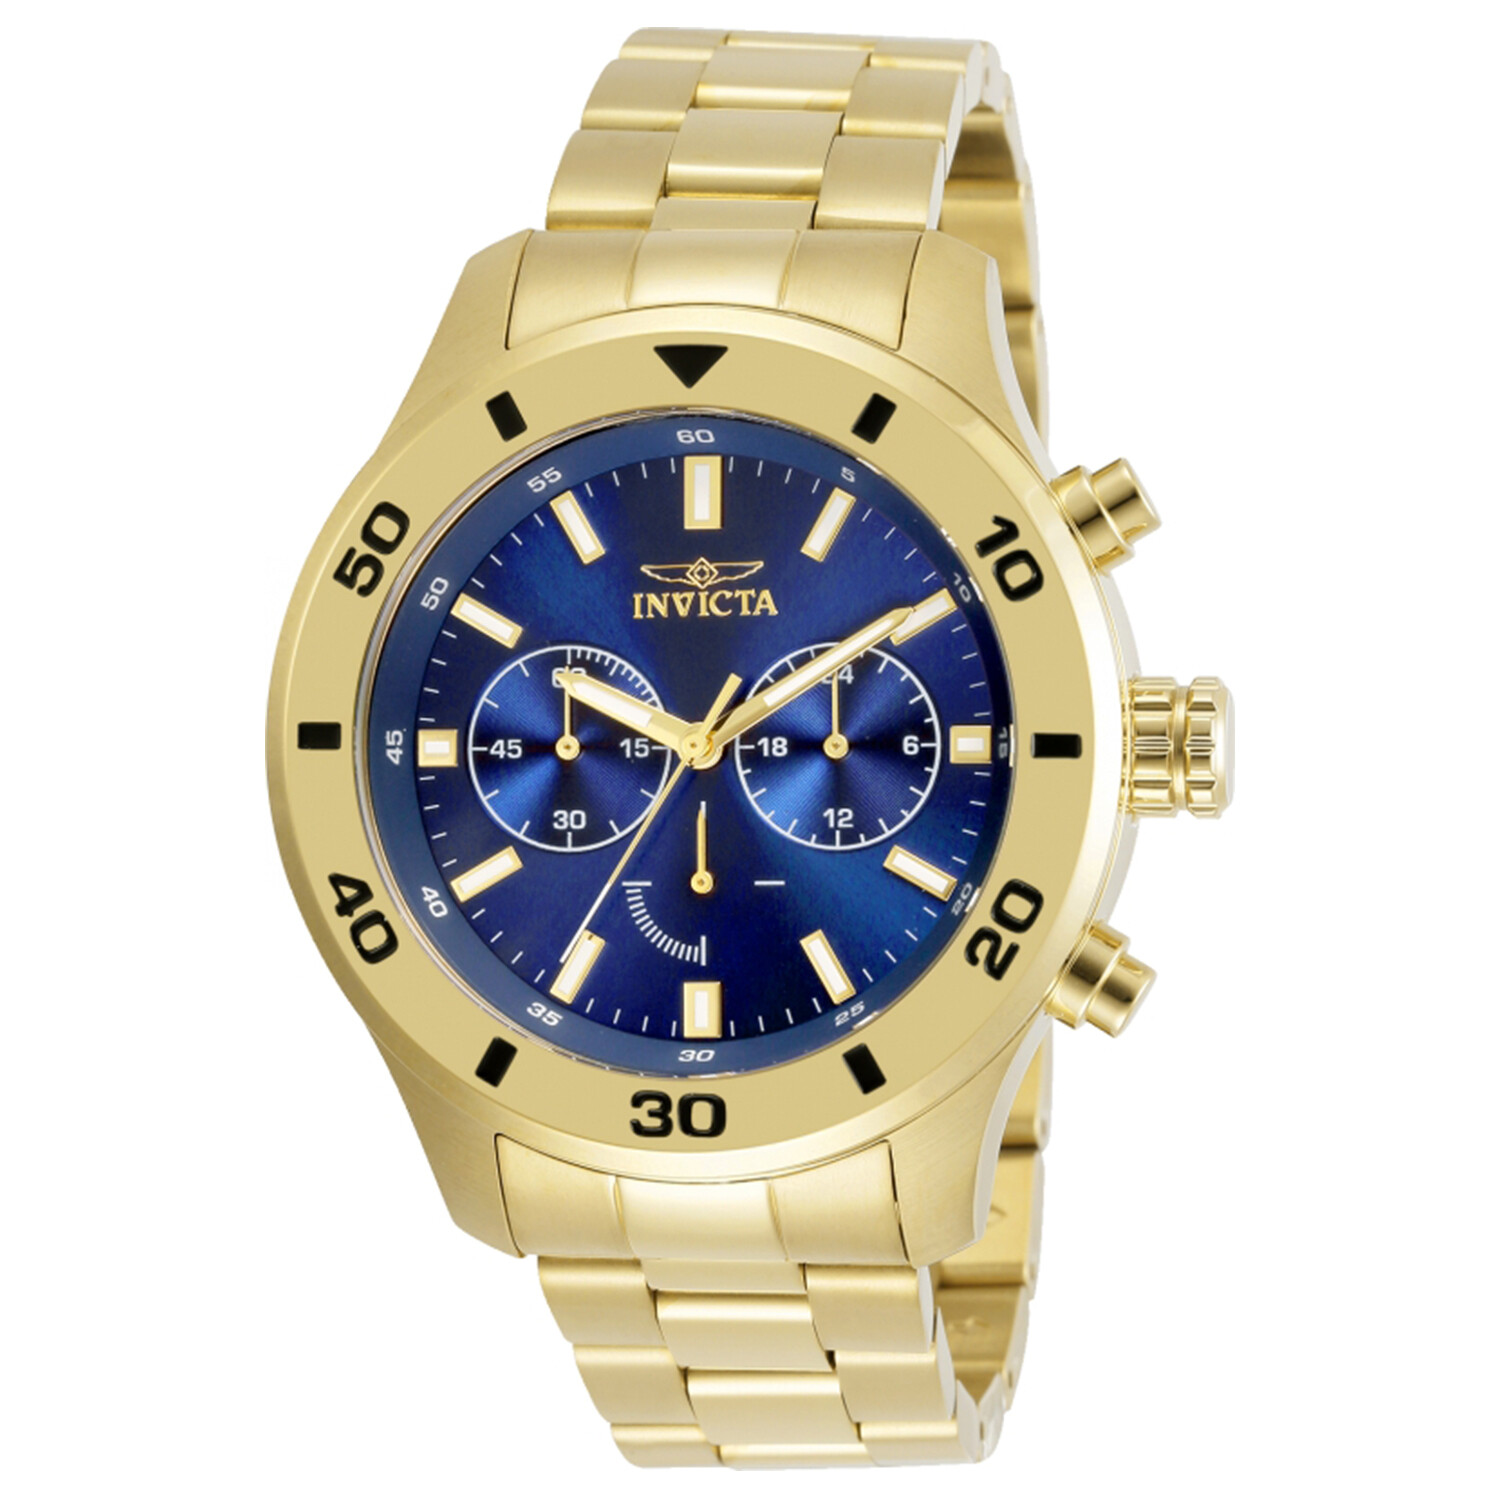 Invicta Men's Specialty 28892 Gold Stainless-Steel Japanese Quartz Dress Watch